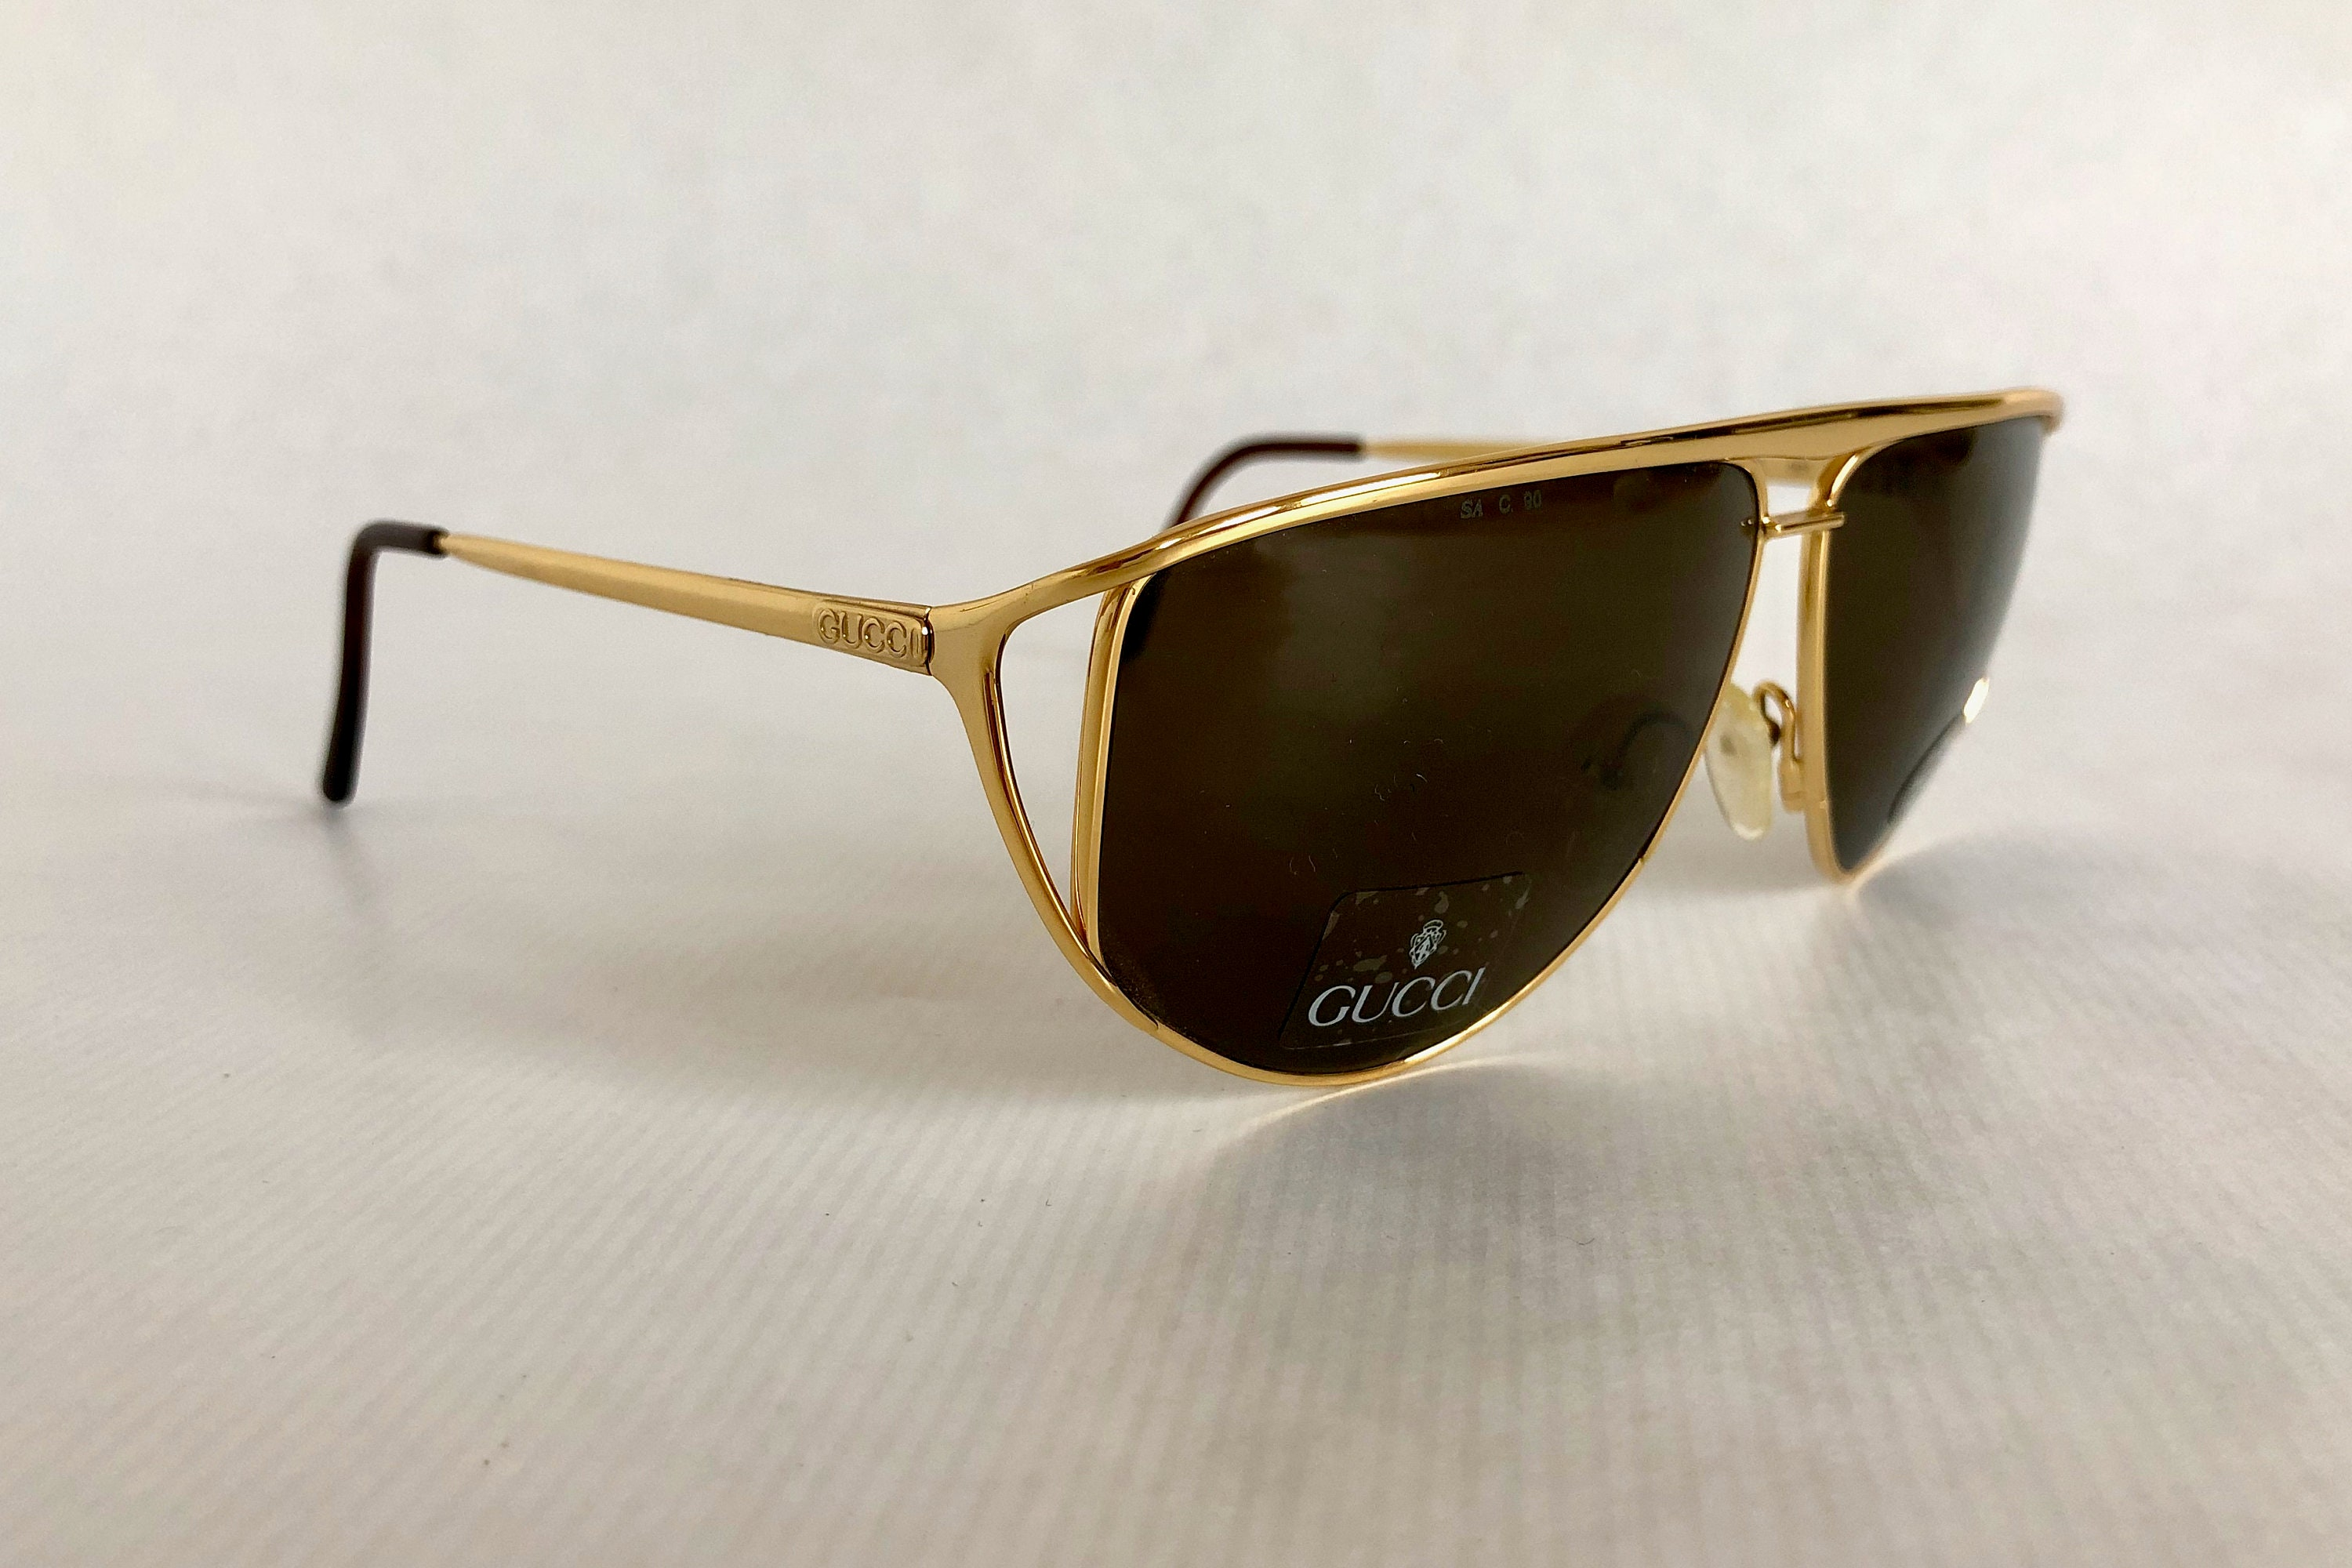 47a12aa60c GUCCI GG 2233 S Vintage Sunglasses New Old Stock including Case. gallery  photo gallery photo gallery photo ...